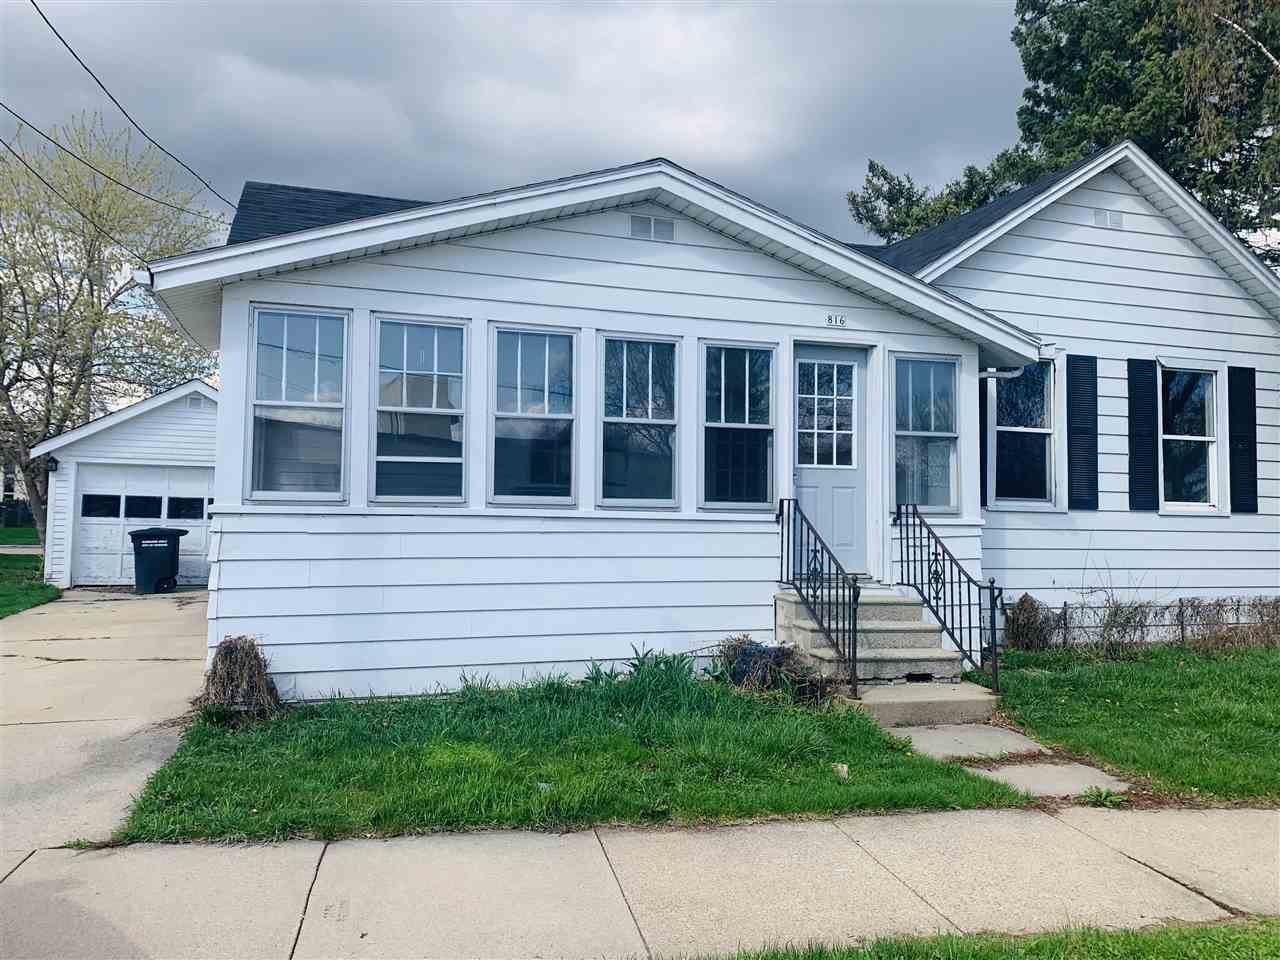 816 SCHOOL Avenue, Oshkosh, WI 54901 - MLS#: 50238239